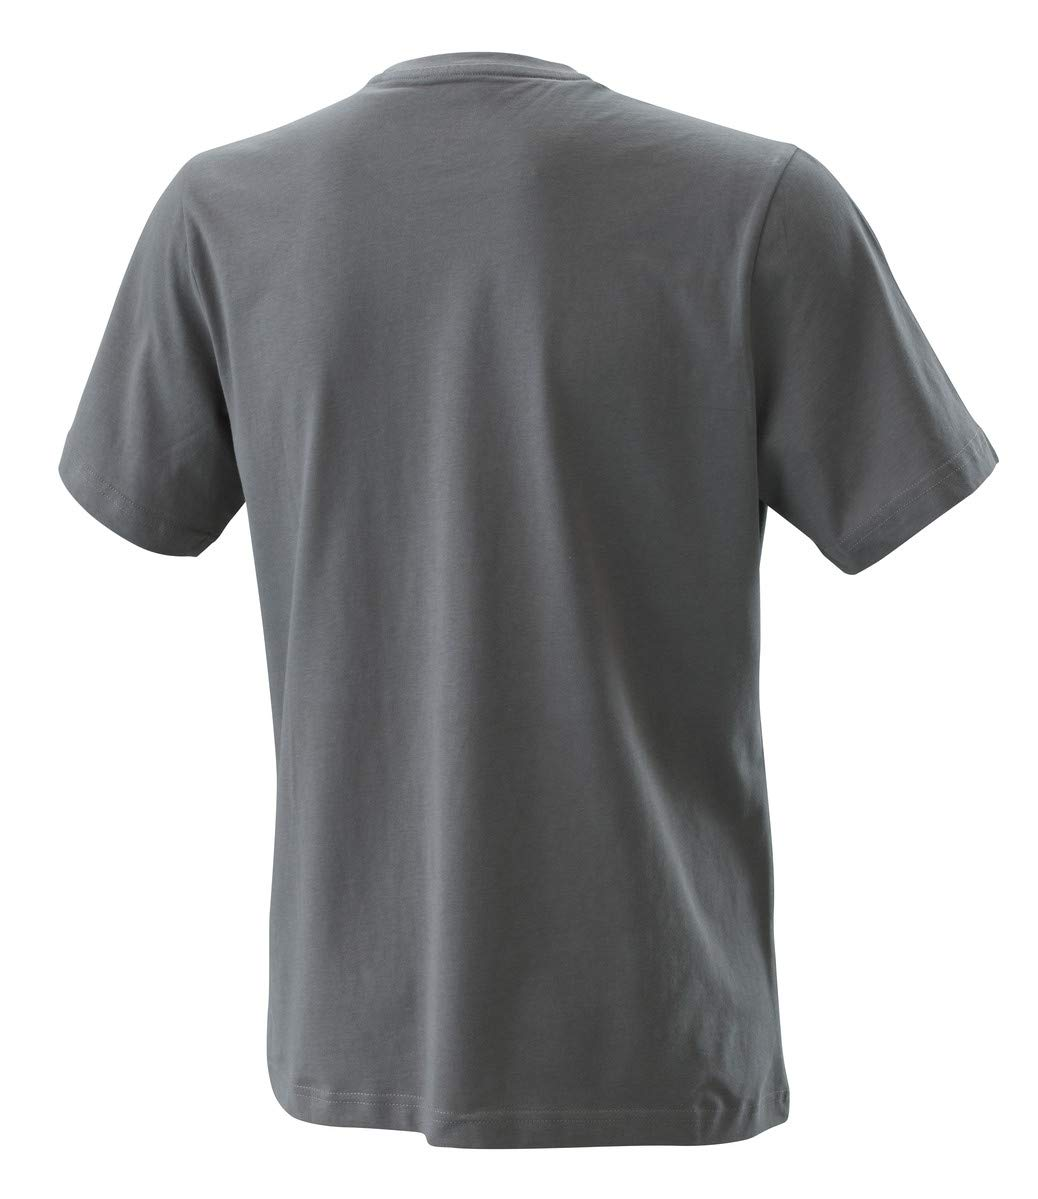 GREY NEW KTM RADICAL LOGO TEE MEDIUM